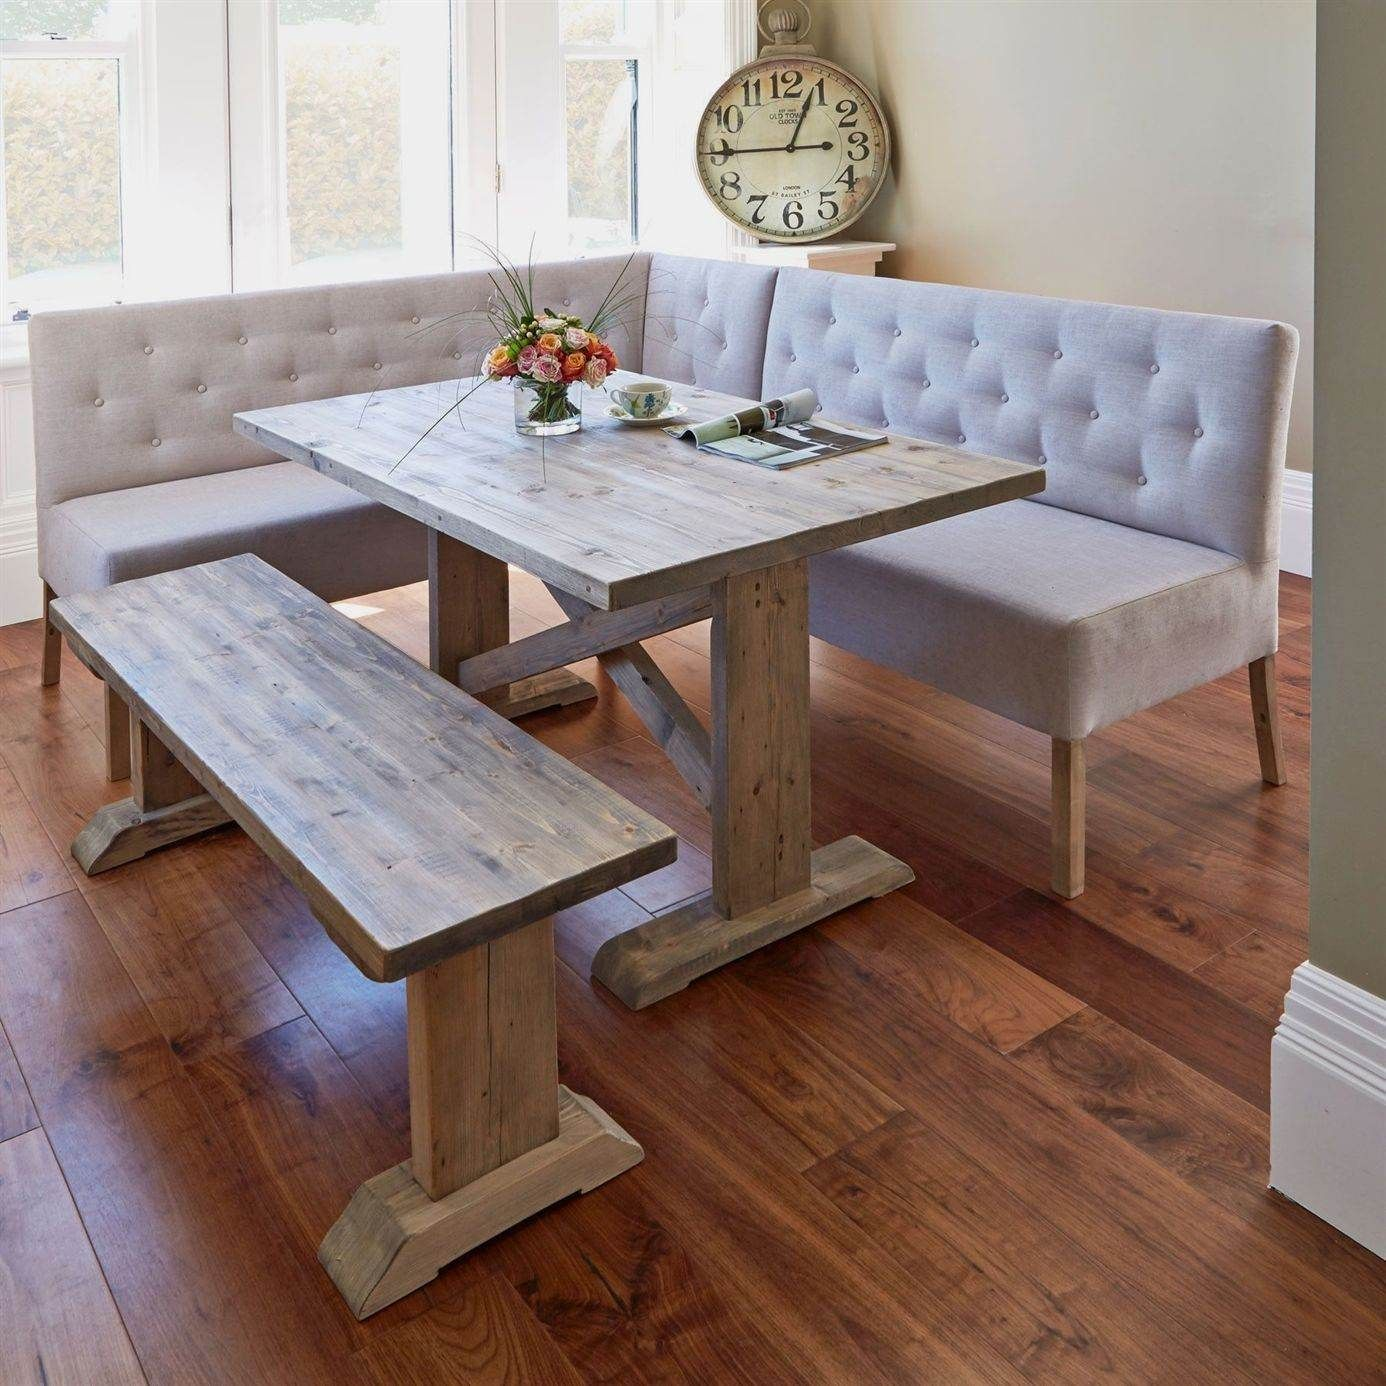 Dining Room Bench Seating With Storage Check More At Https